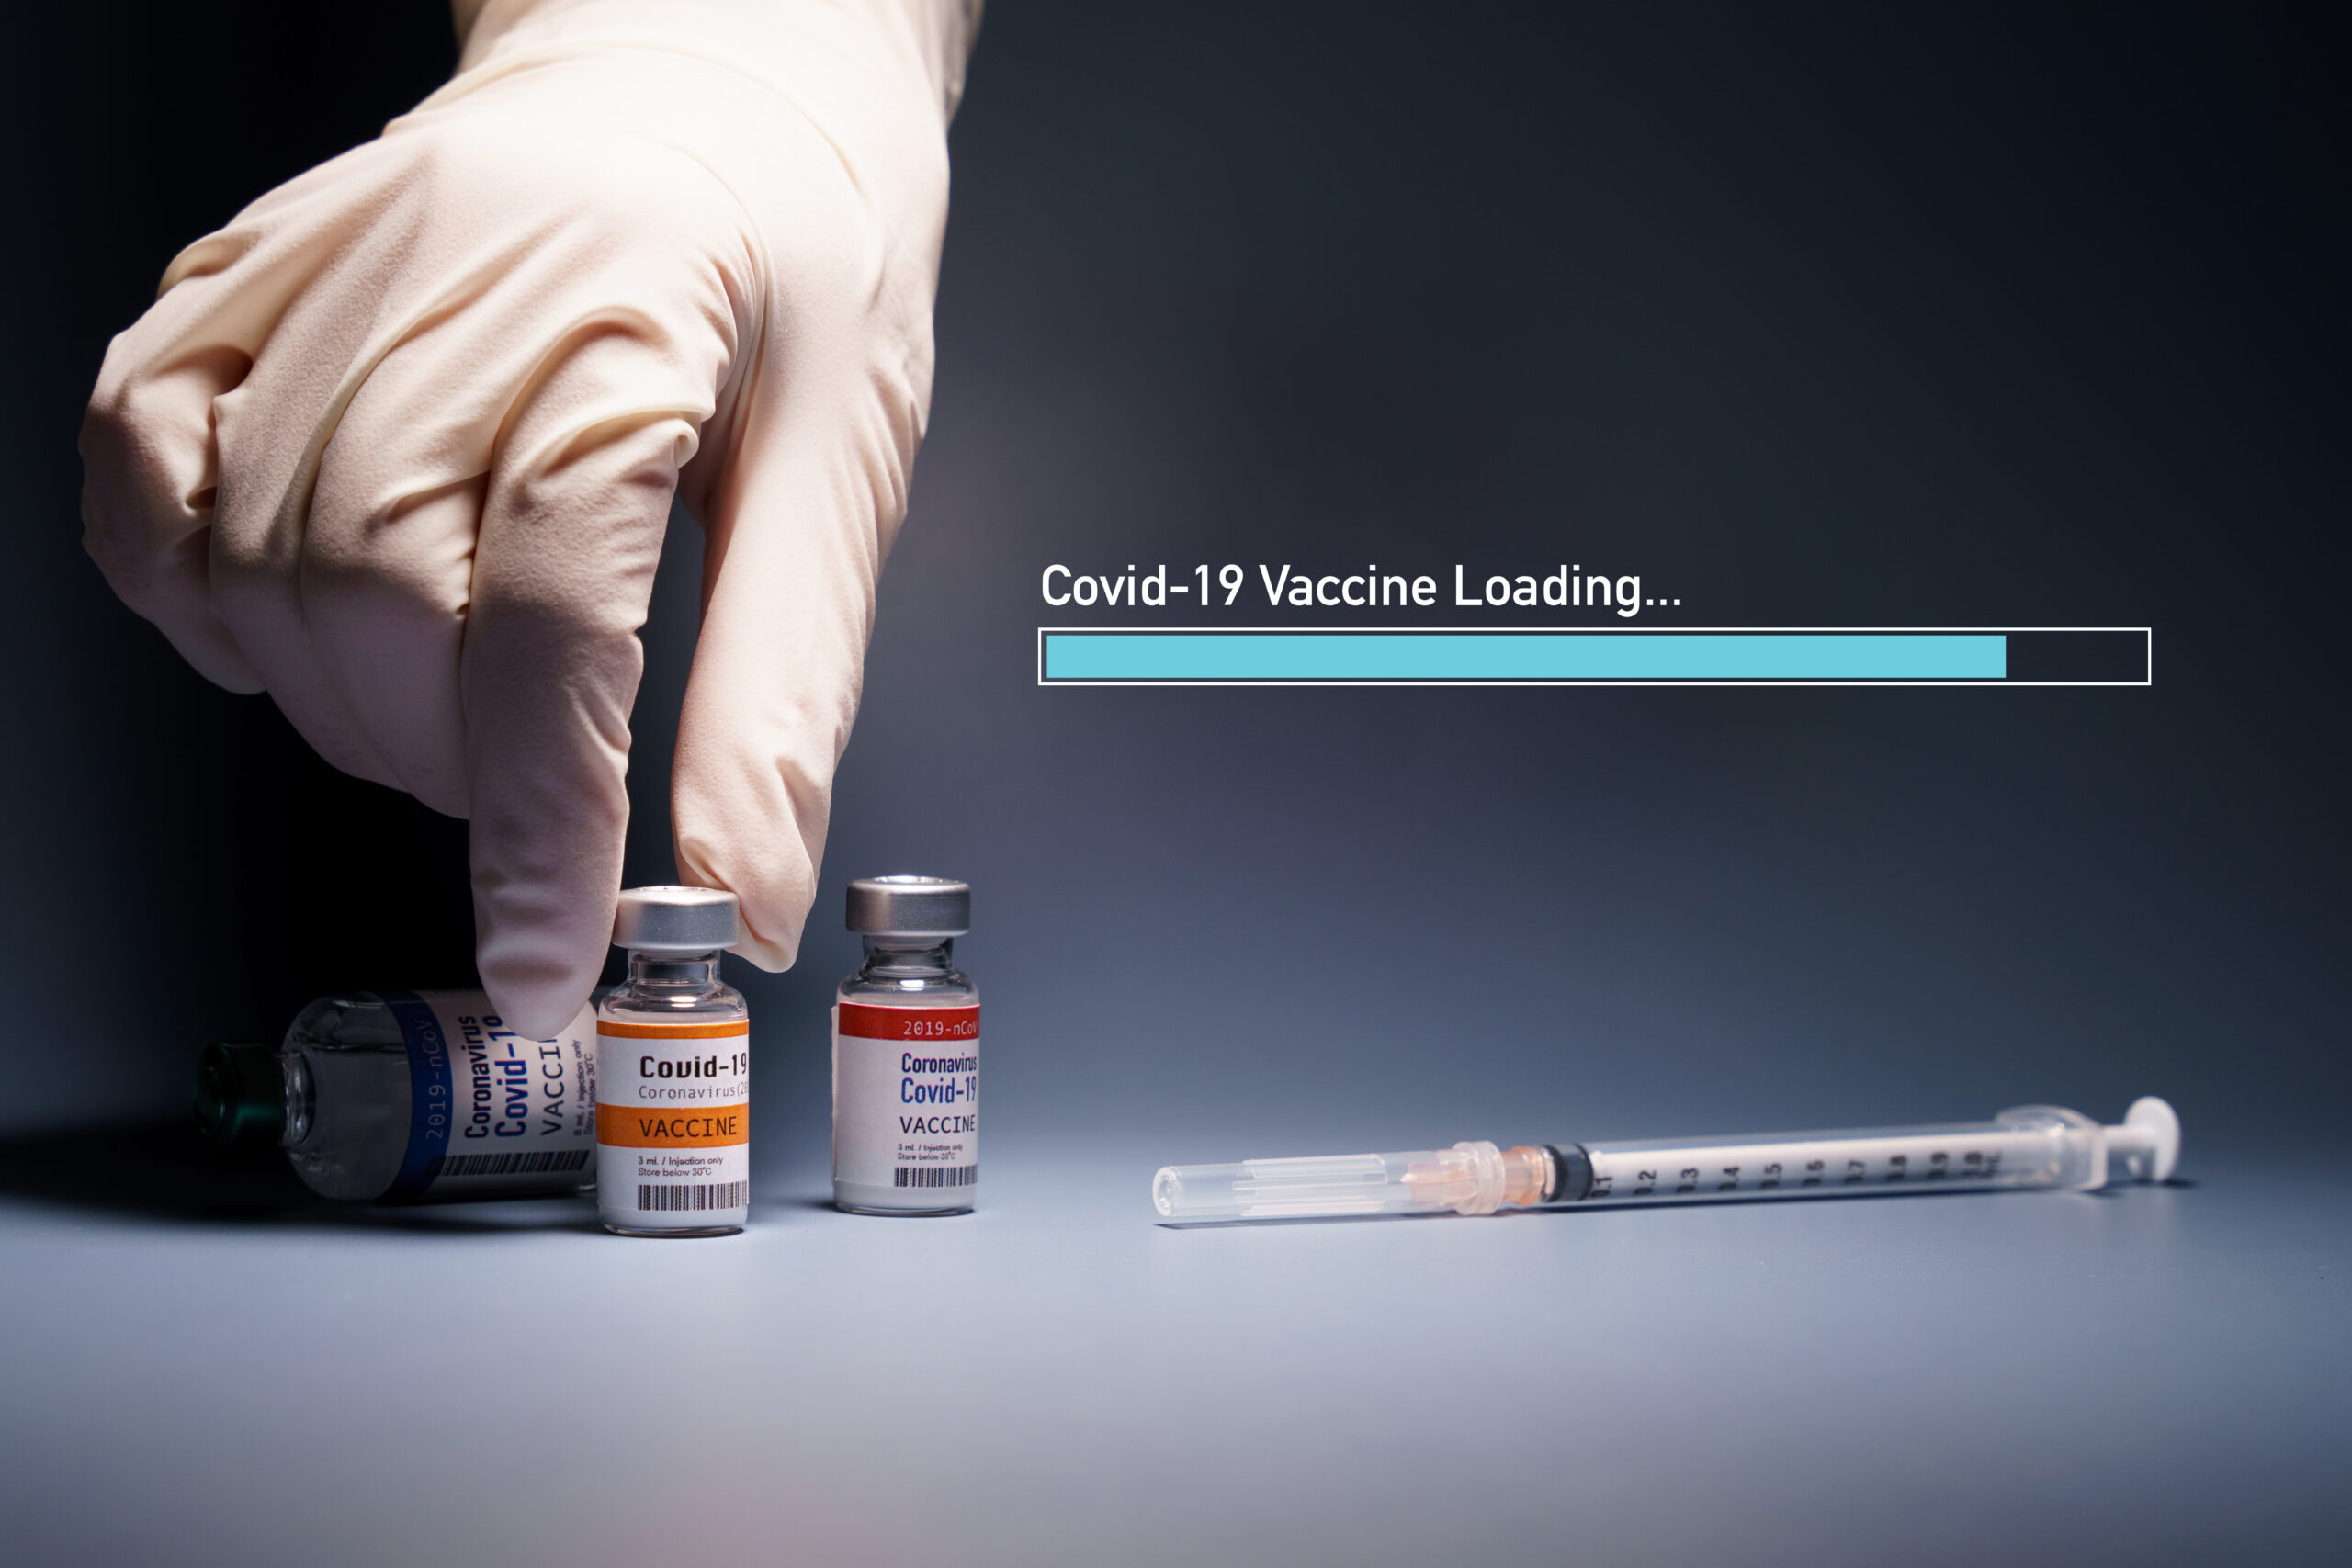 J&J Vaccine Authorized & Rolling Out